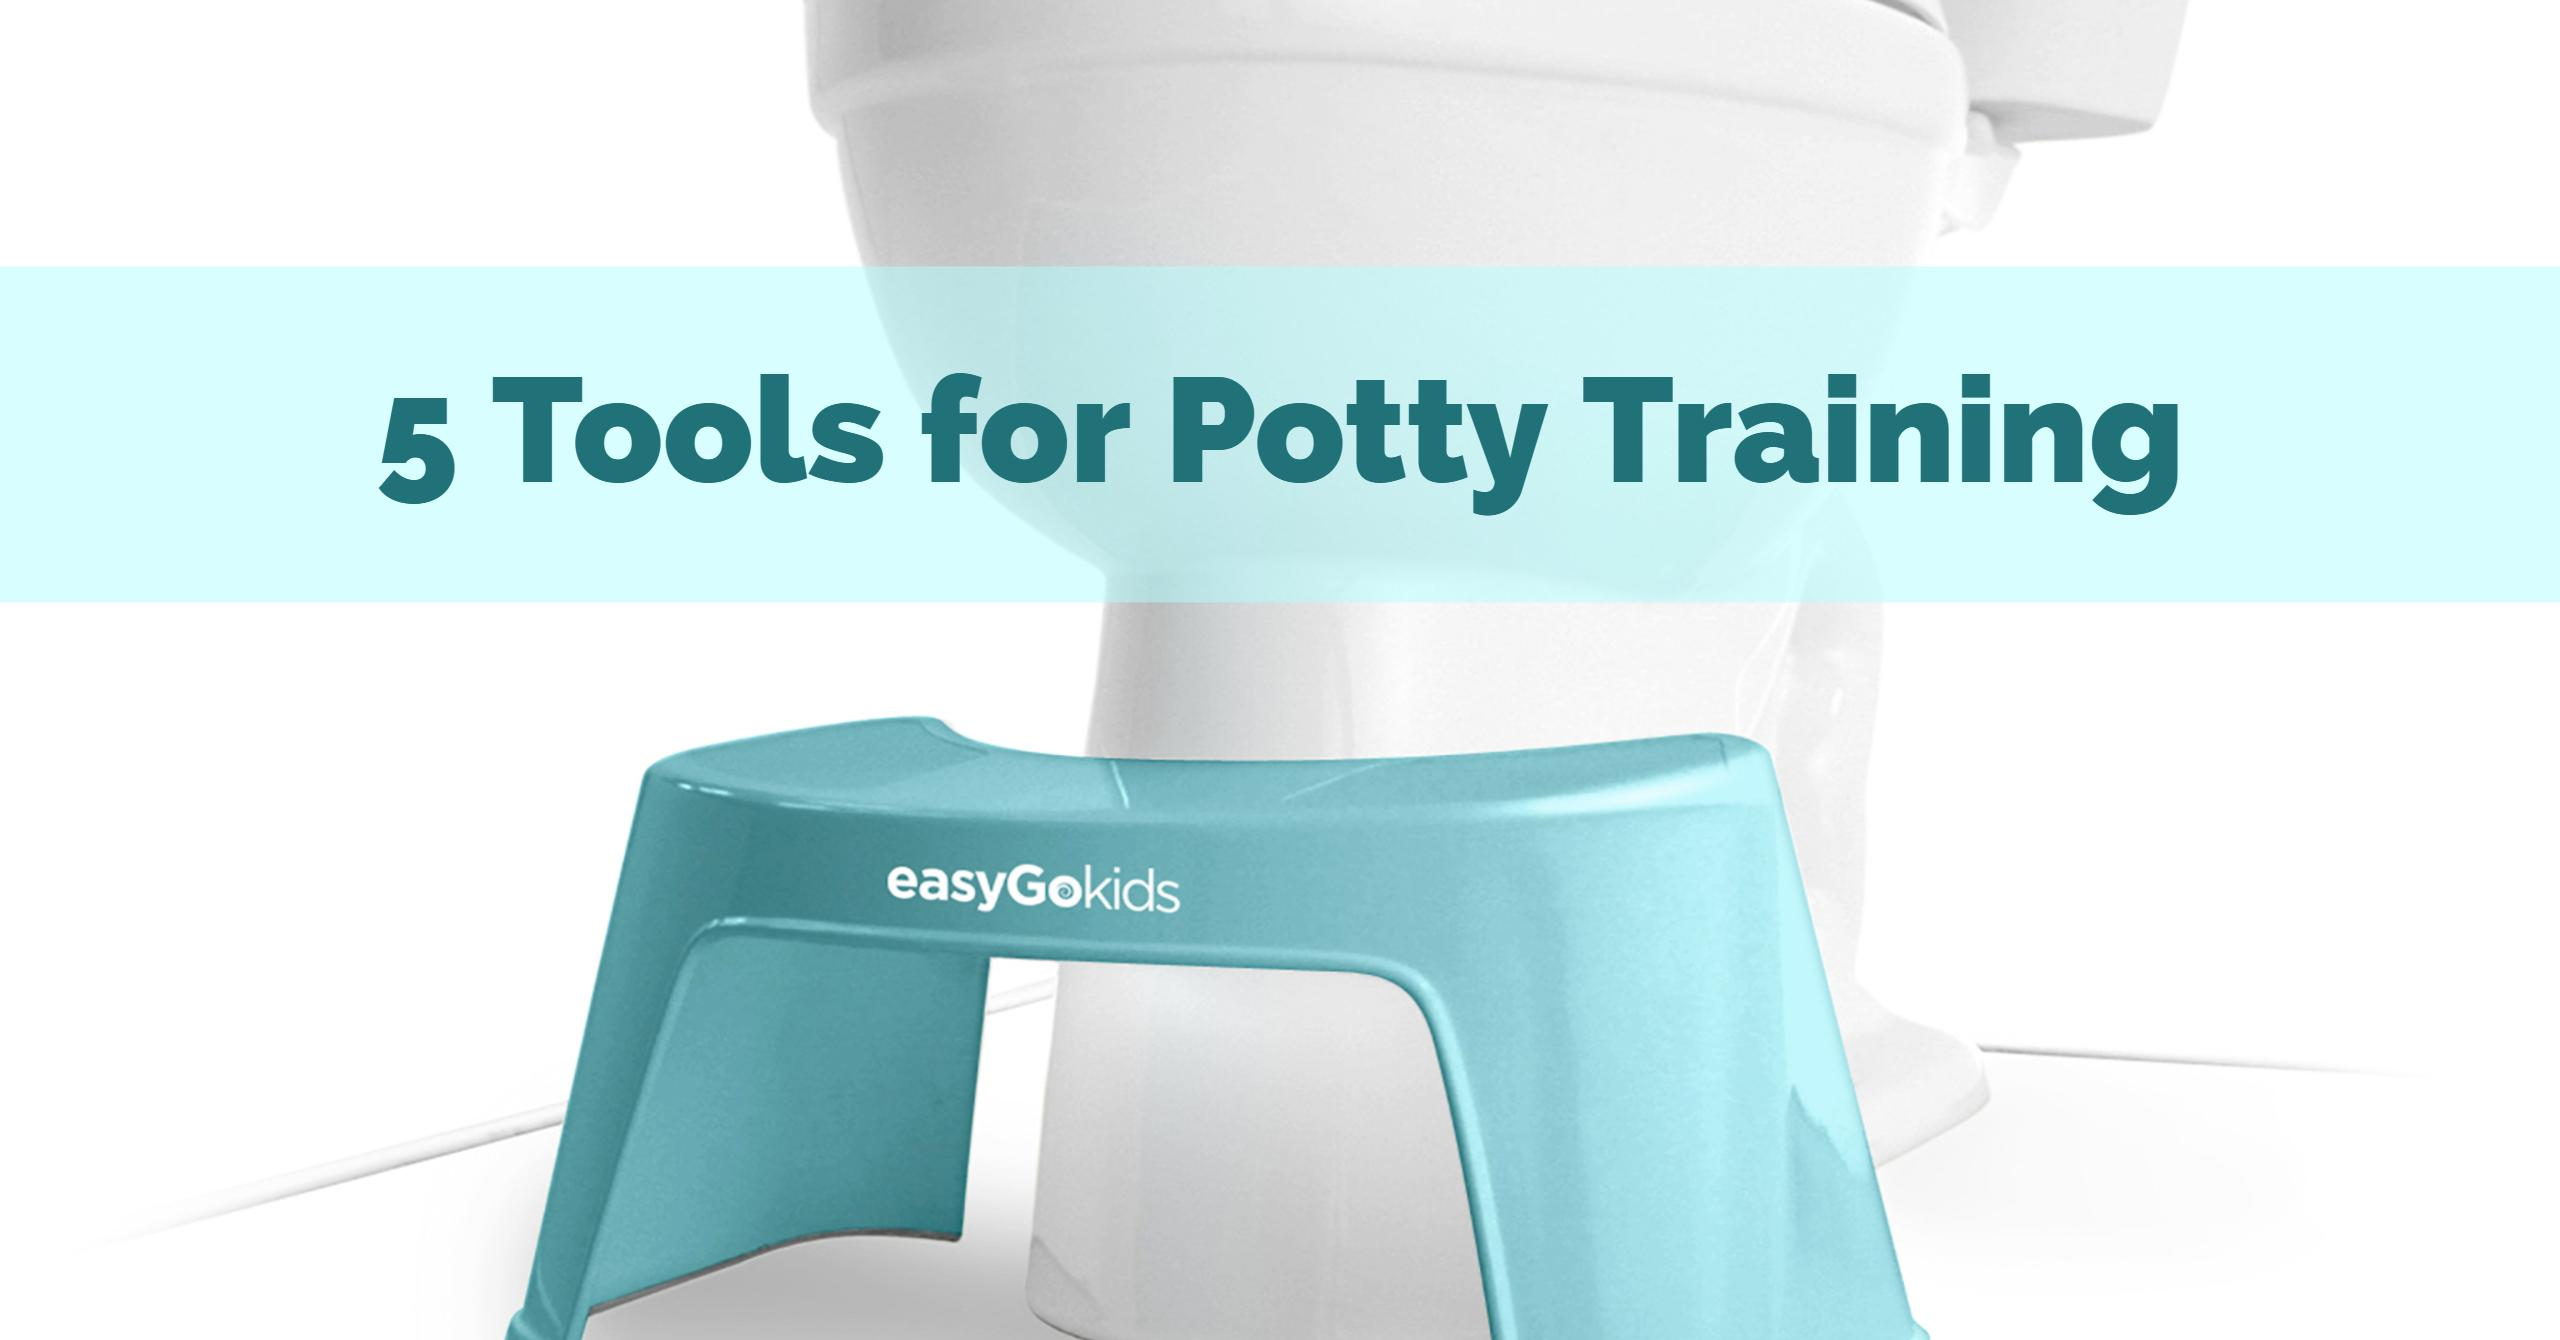 5 Tools for Potty Training